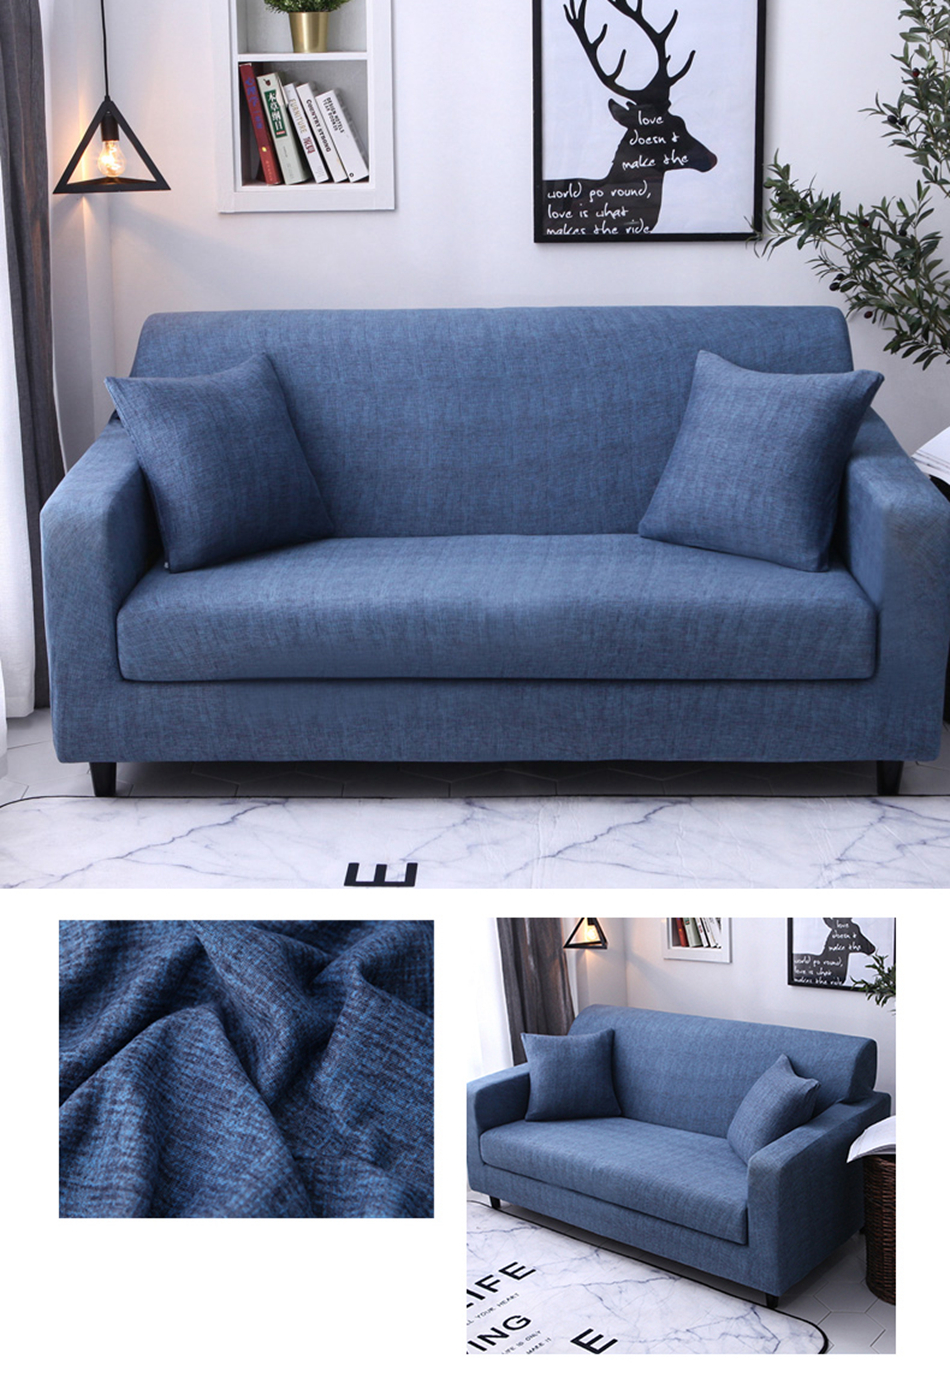 Astonishing Plaid Sofa Cover Stretch Seat Couch Covers Loveseat Short Links Chair Design For Home Short Linksinfo